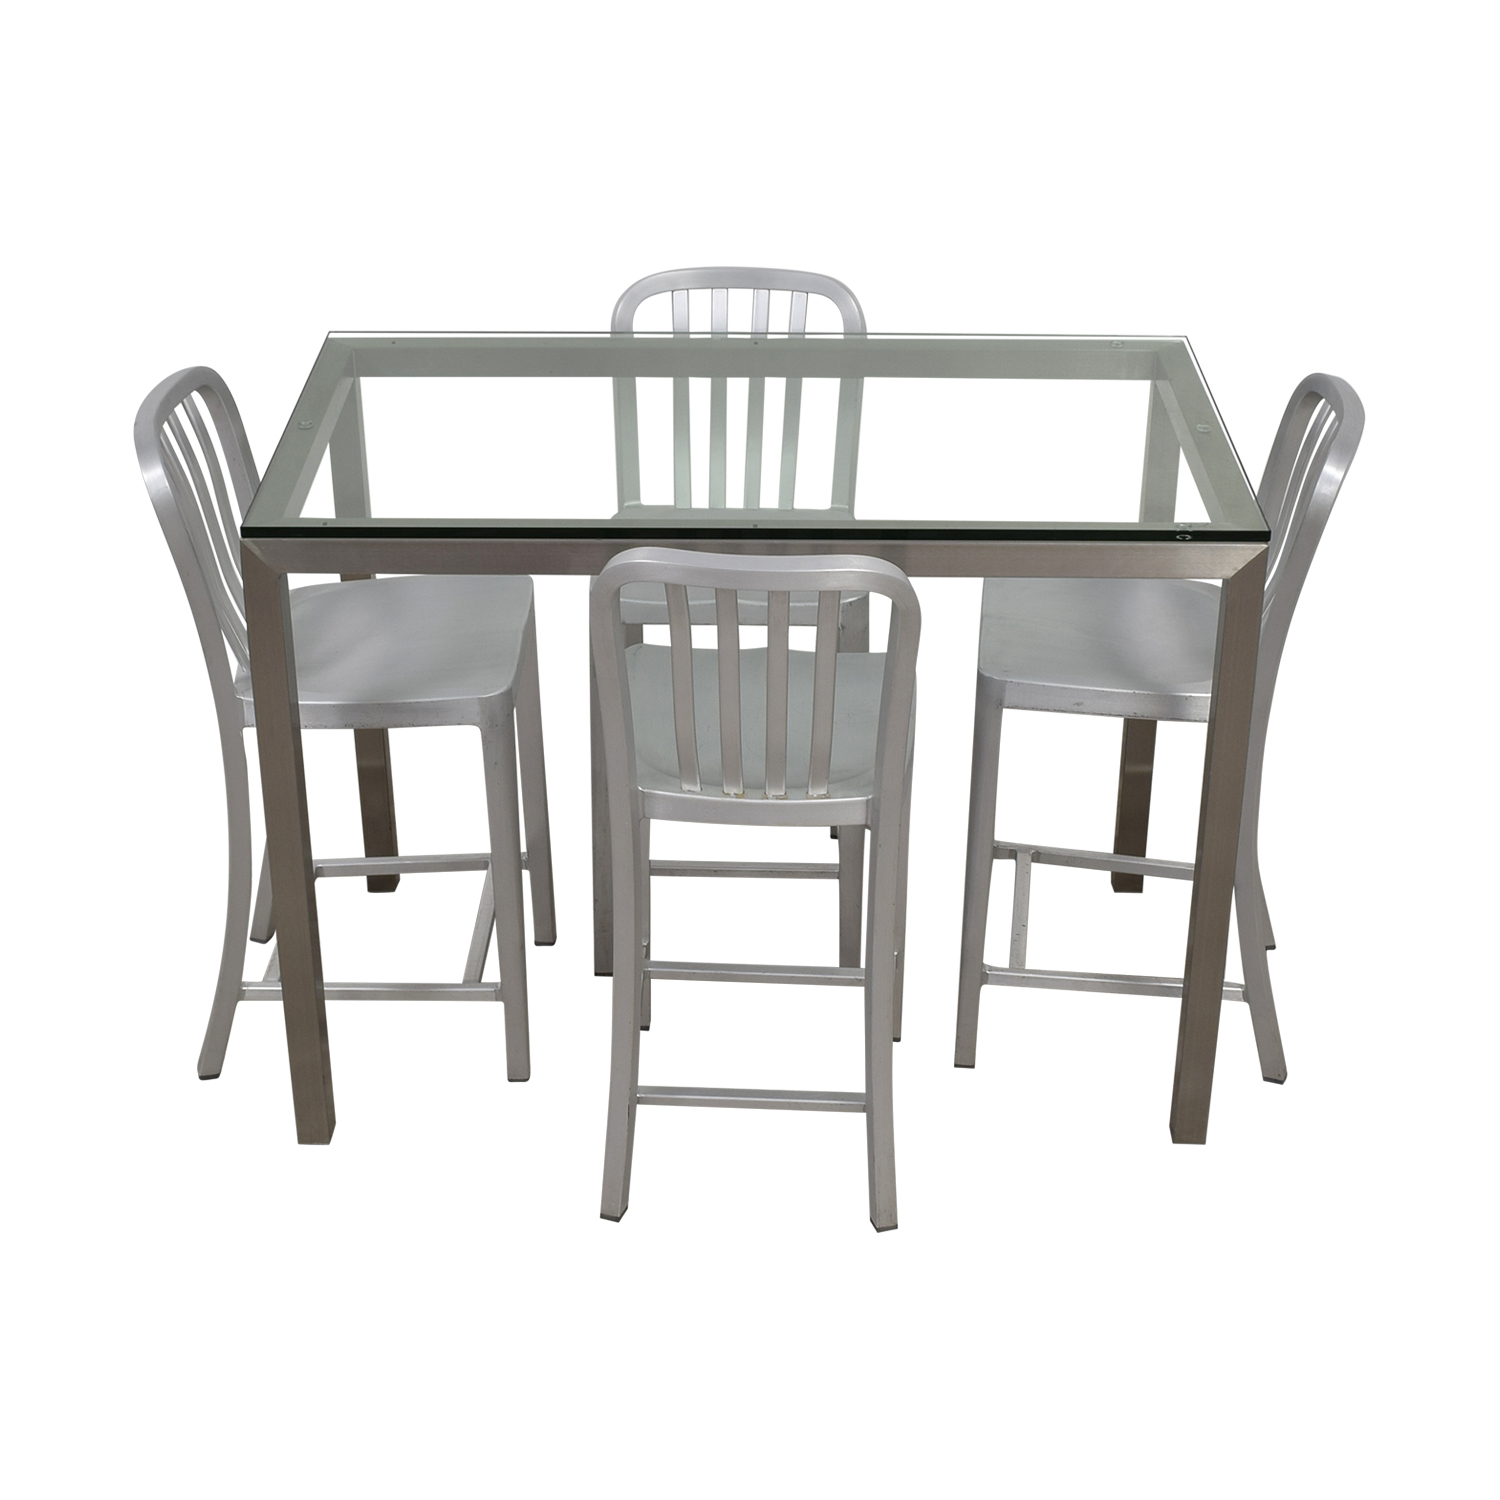 Crate & Barrel Crate & Barrel Parsons Glass and Metal High Table Set coupon